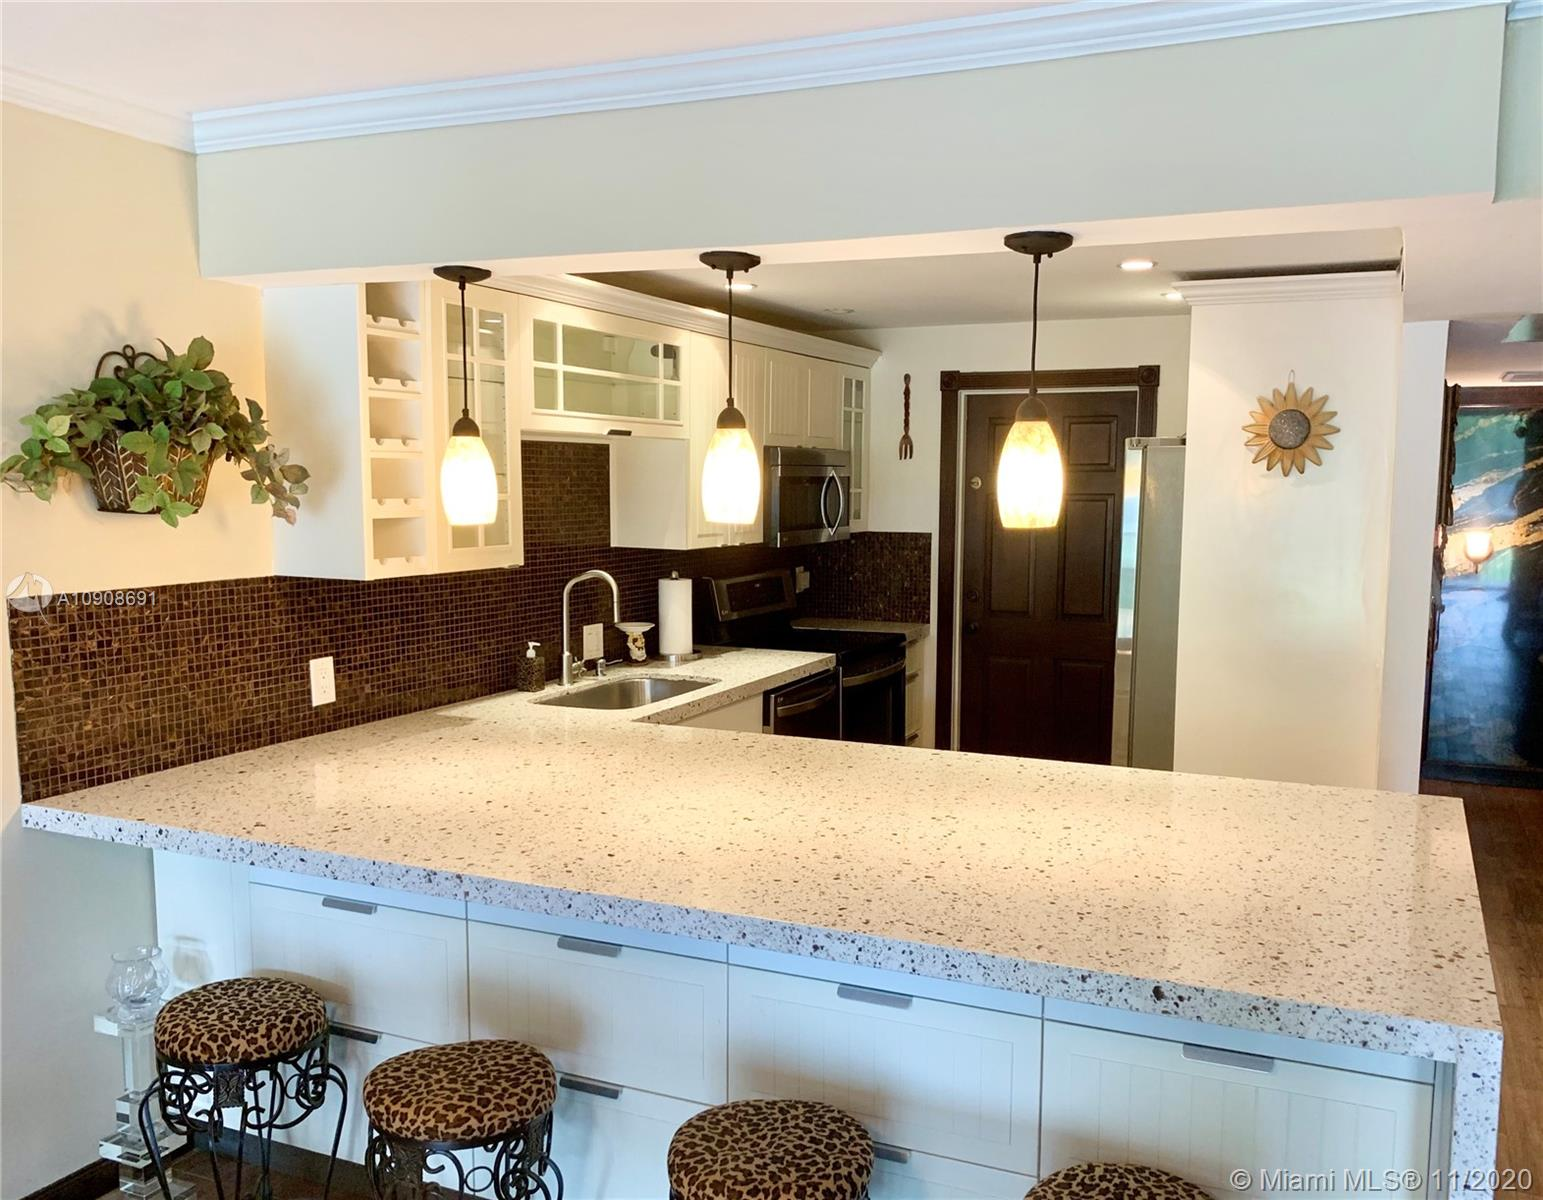 Beautiful corner completely remodeled apartment in Palm Aire Country Club. 3 bedrooms, 2 bathrooms, all tiled, open kitchen, stainless steel appliances,  crown molding, golf view, very bright unit with lots of closet space. Building is walking distance to main street. Association has 3 pools. Near shops, restaurants, main highways and beaches.